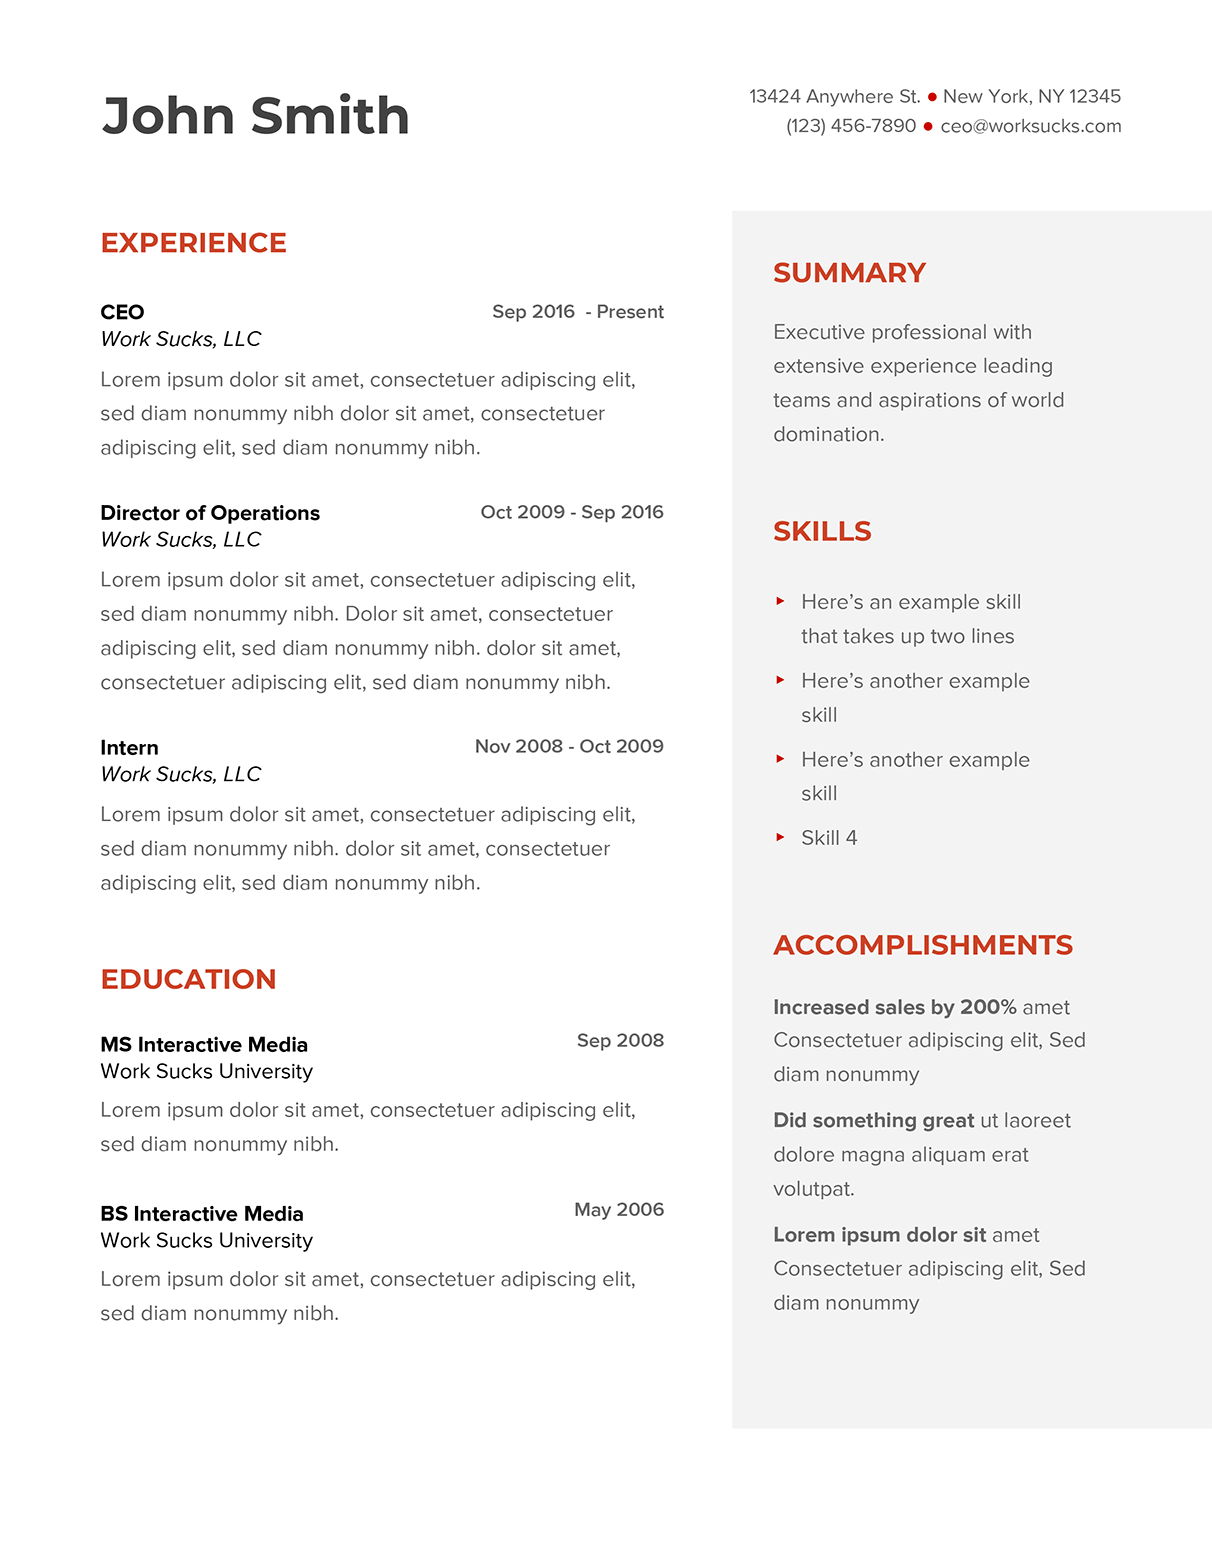 Free Google Docs Resume Template Work Sucks